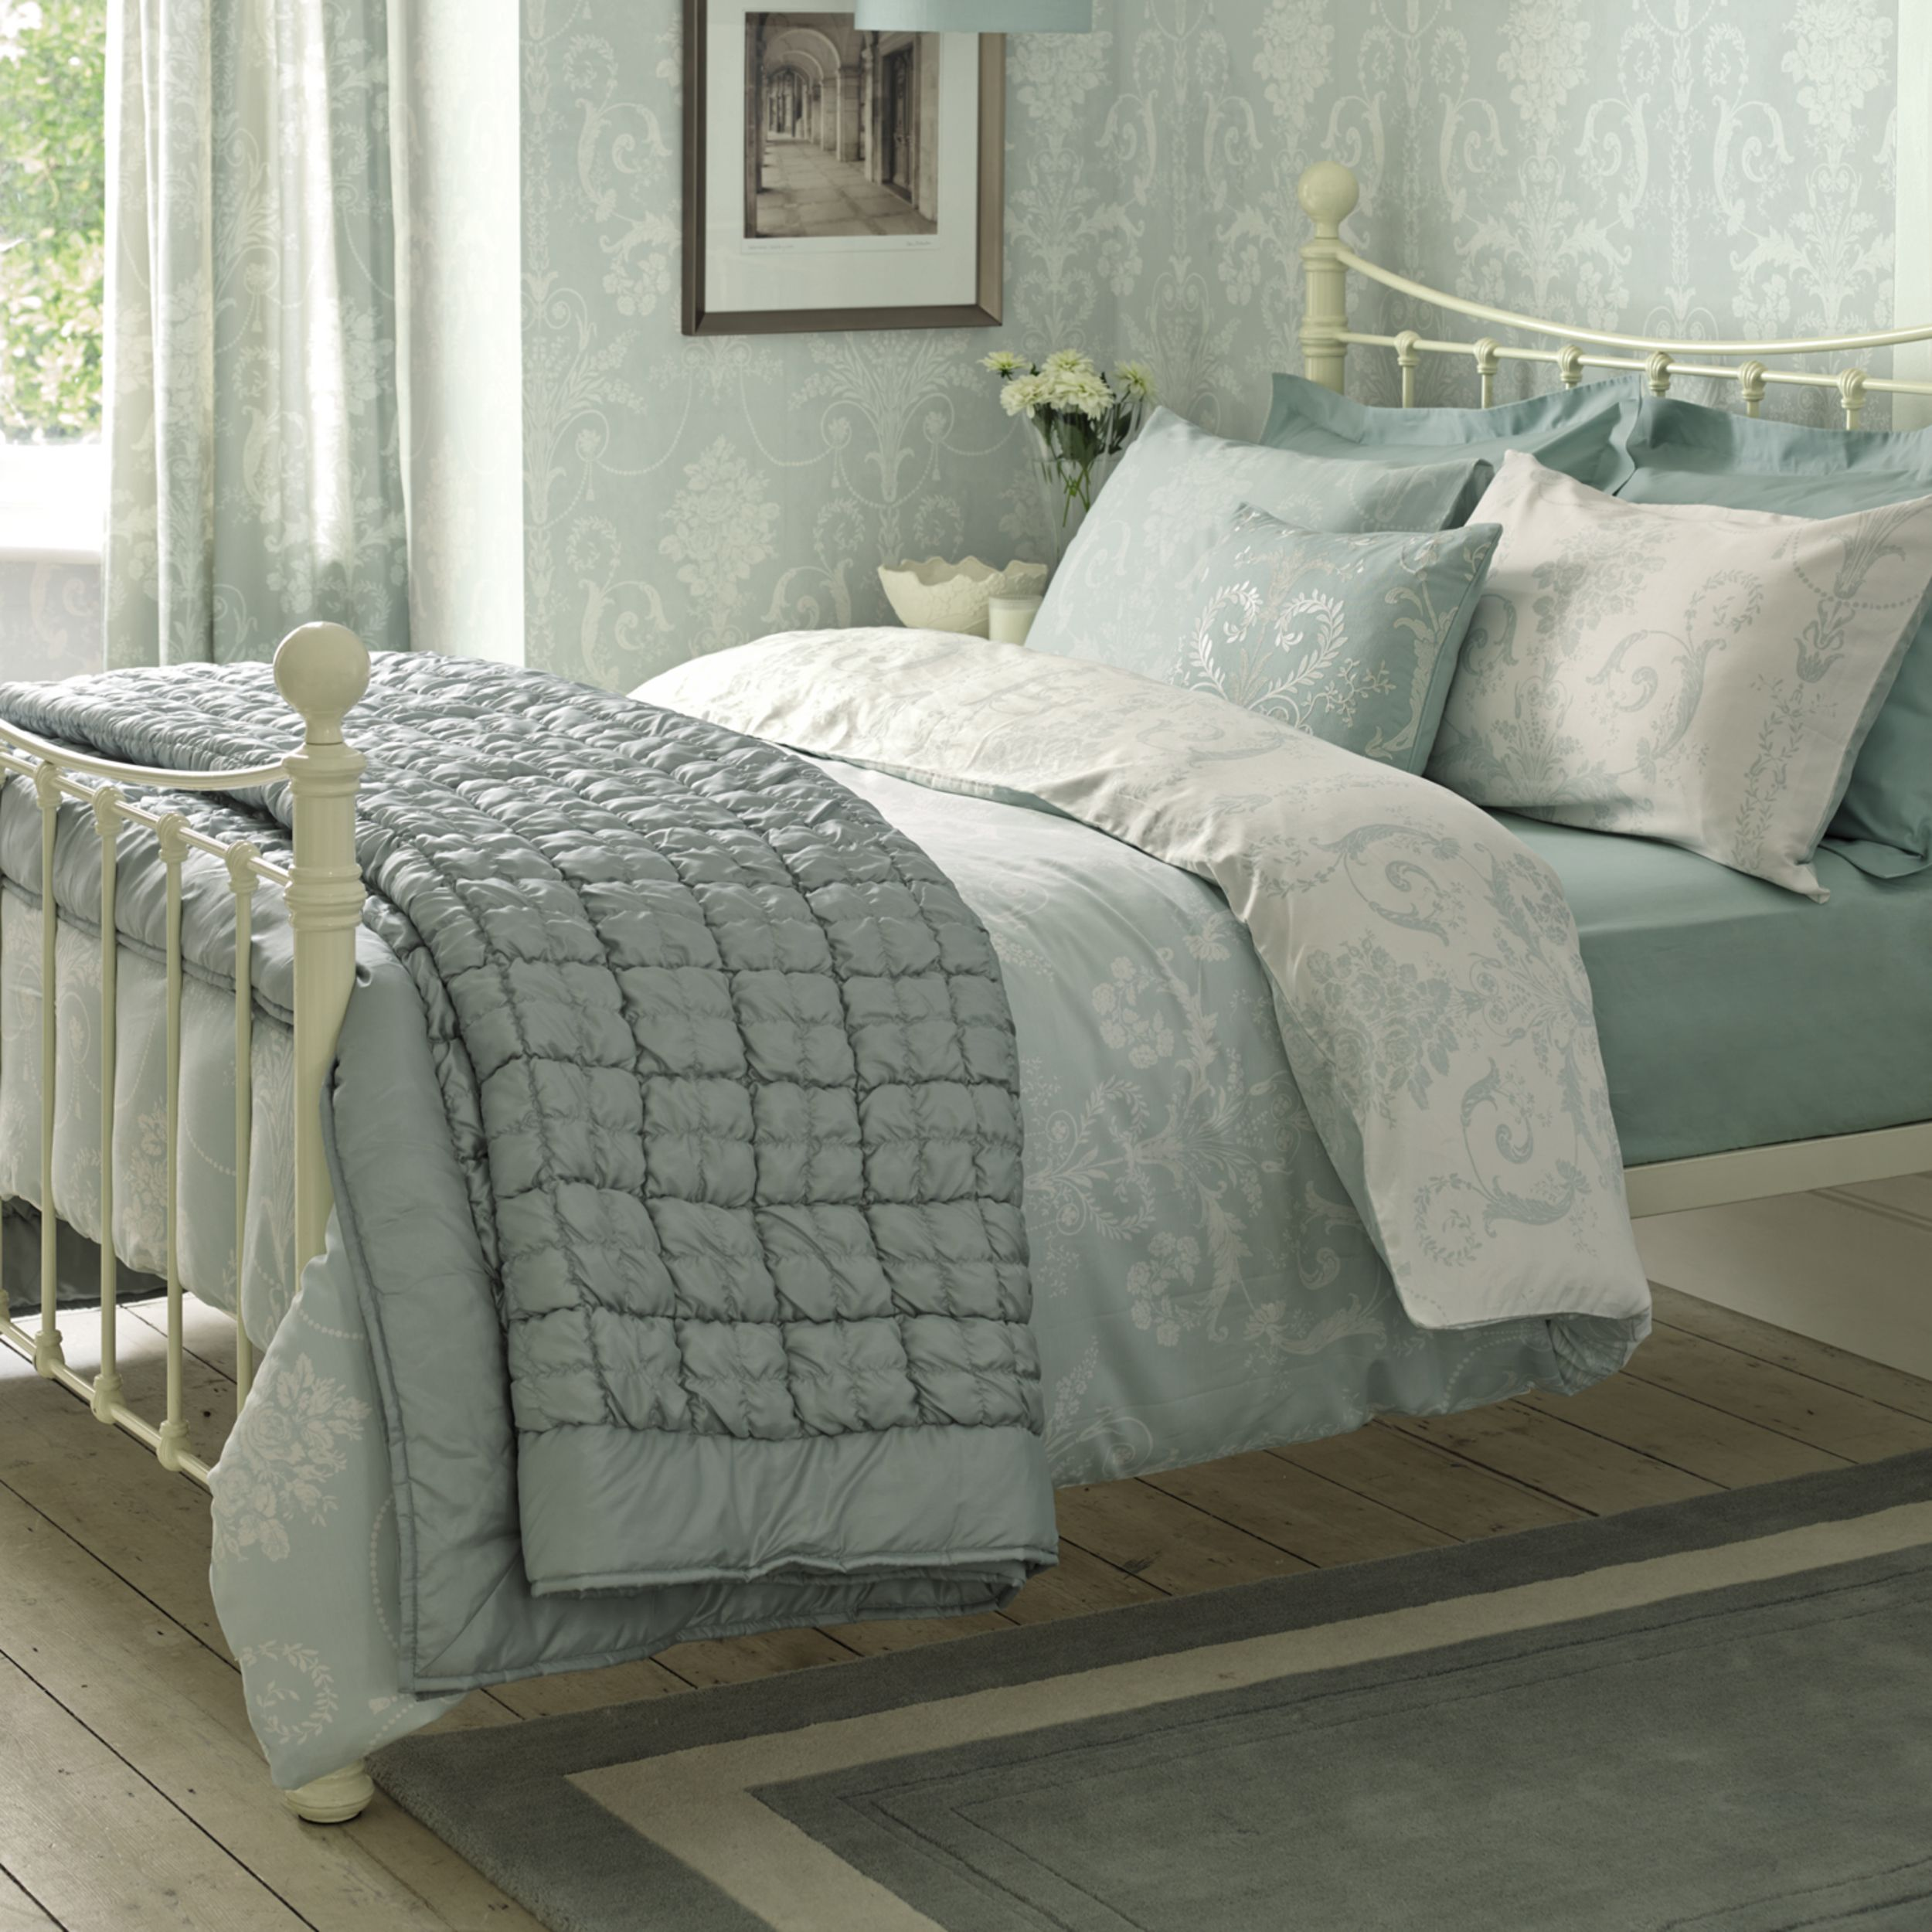 Josette Cotton Bedlinen At Laura Ashley